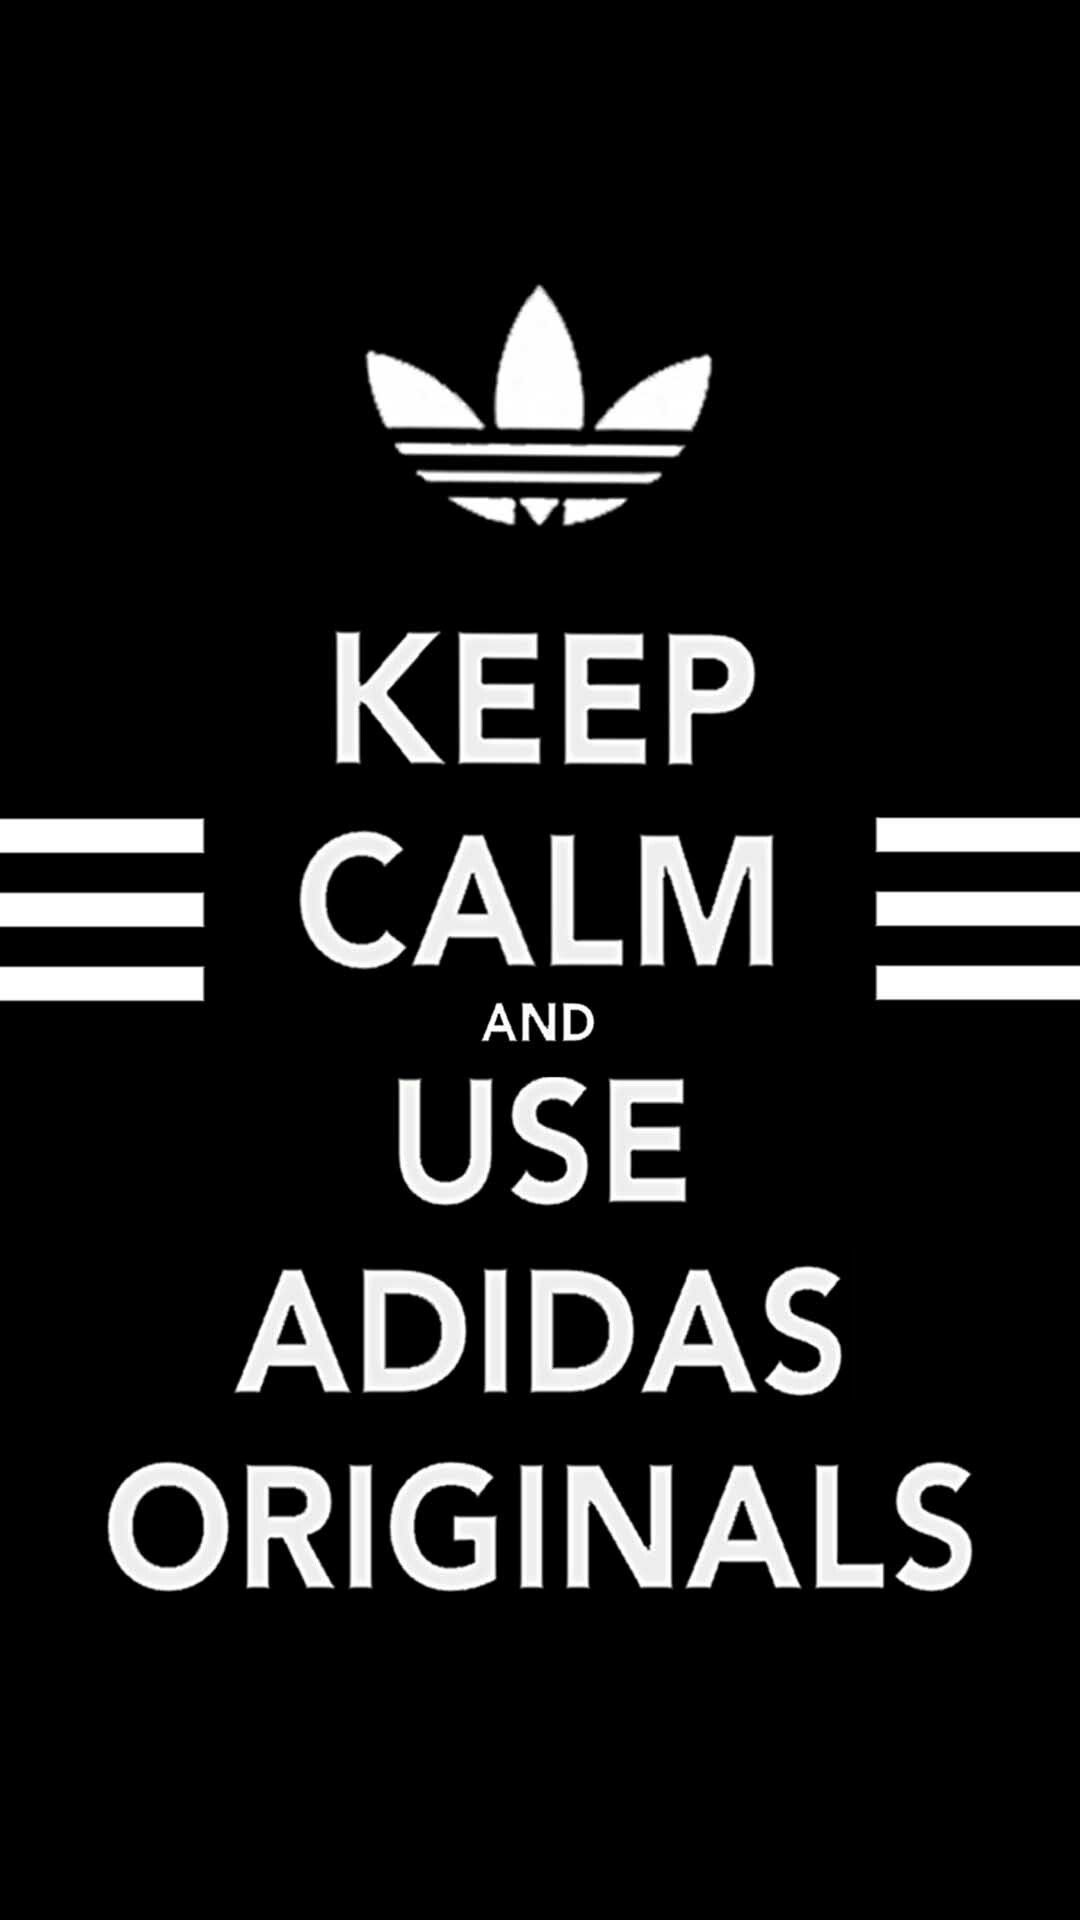 Pin by Petra on 1 Pinterest Adidas Wallpaper and Street art